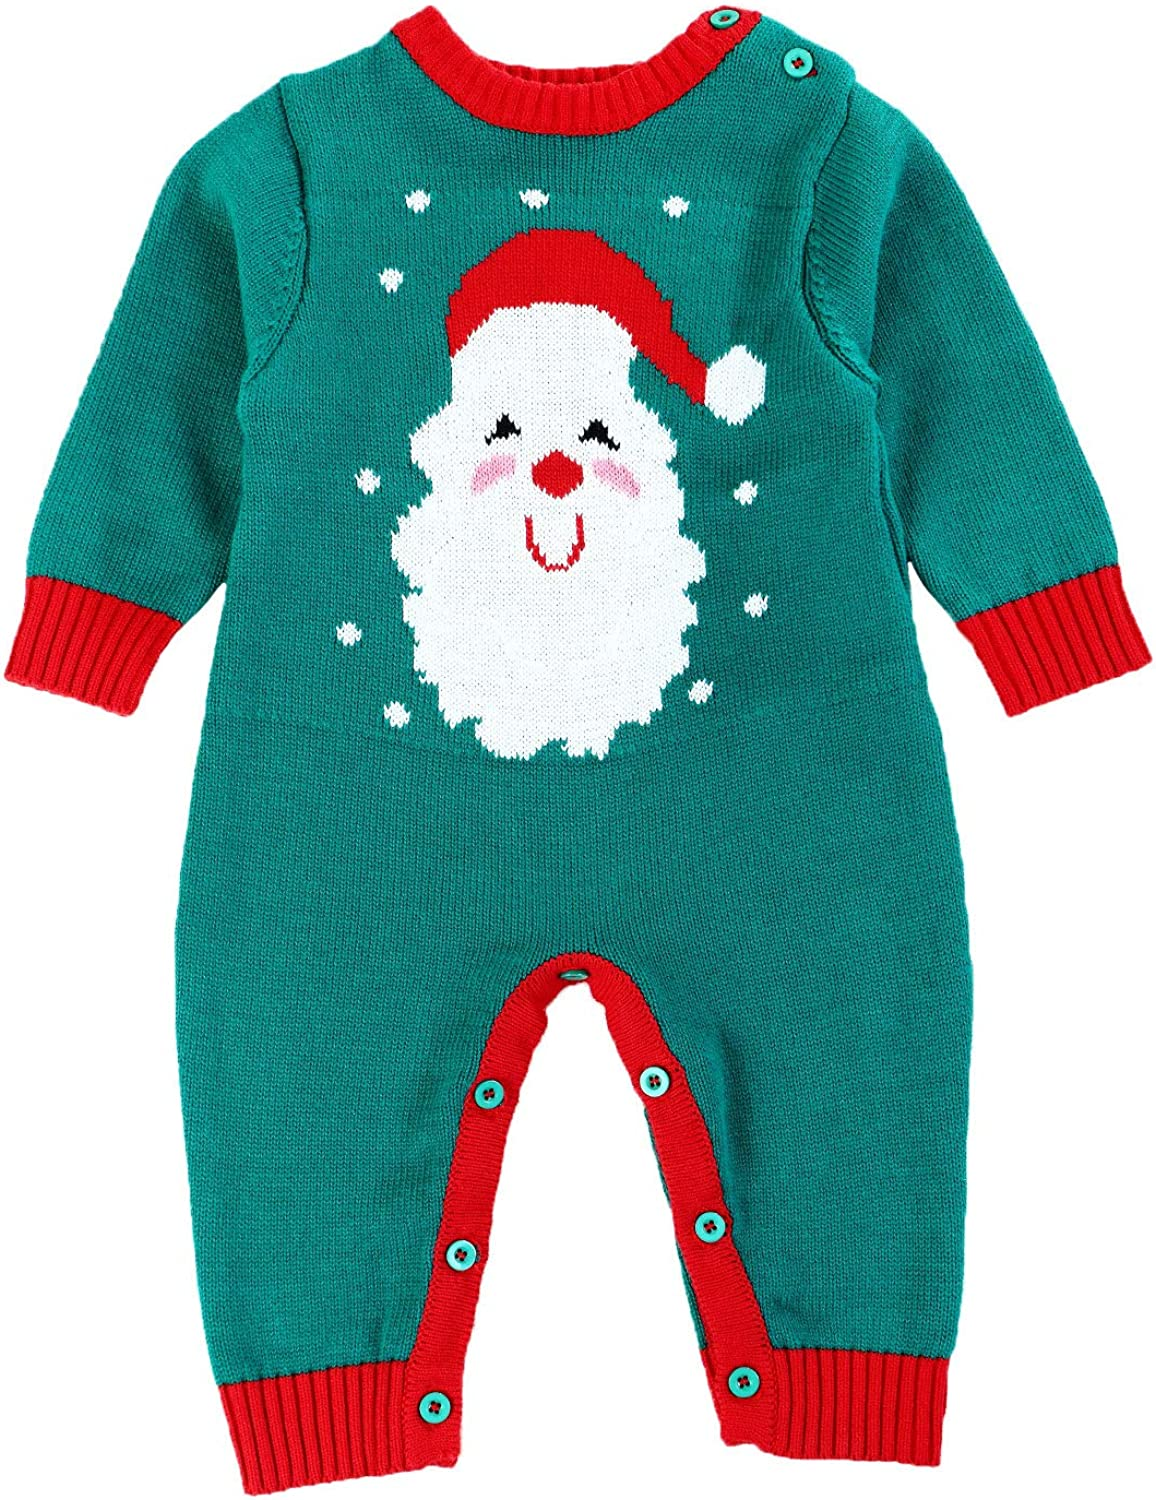 Baby Sweater Kids Christmas Outfits for Boys and Girls